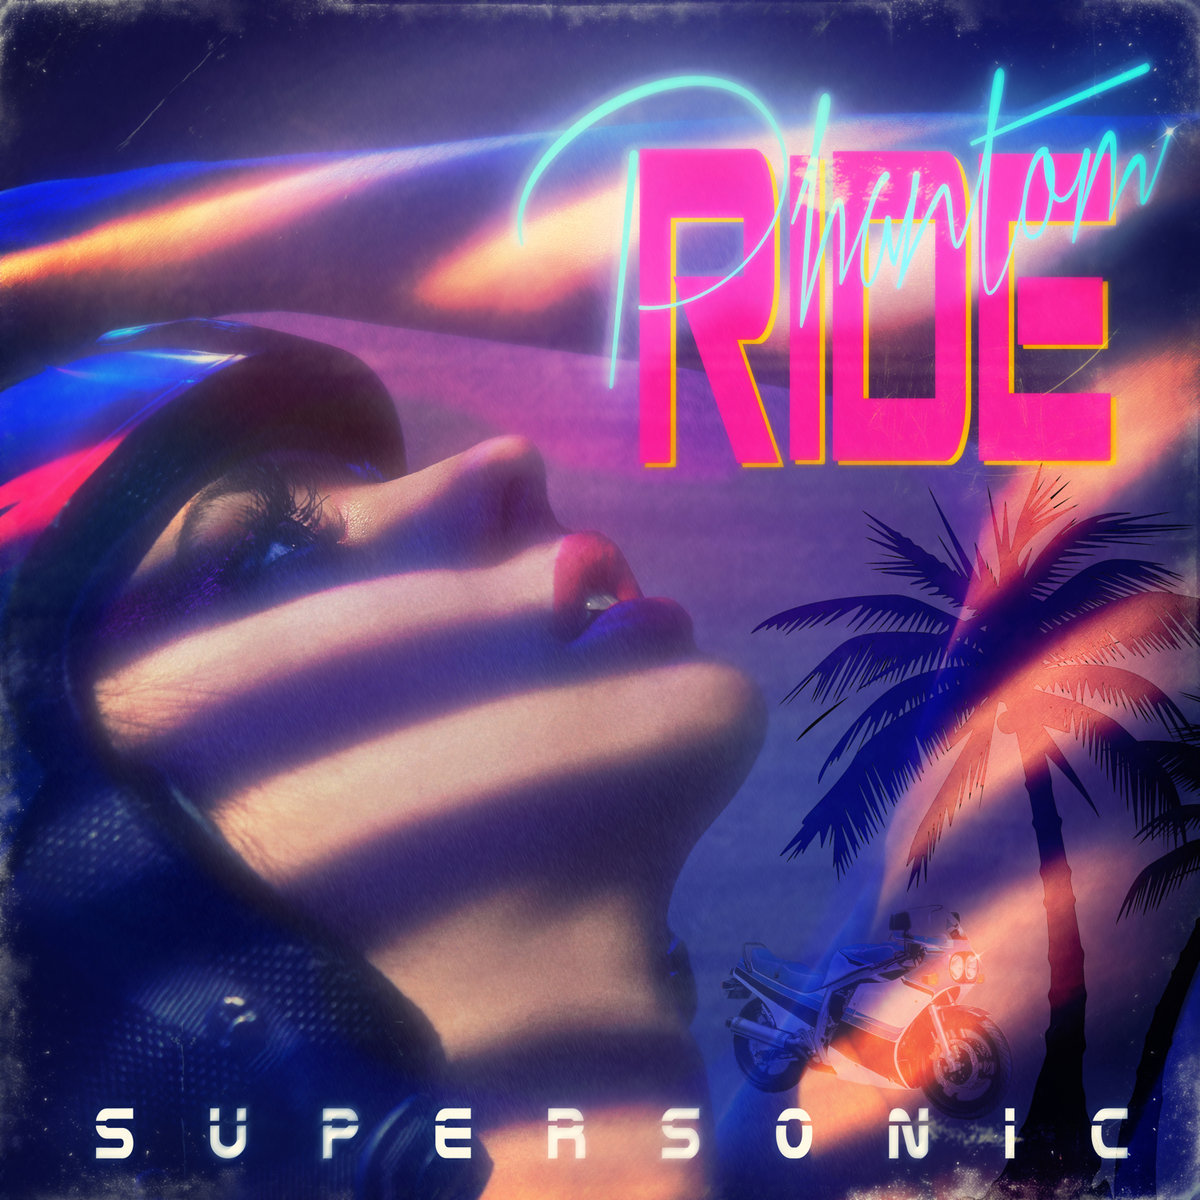 ride mp3 songs free download 320kbps